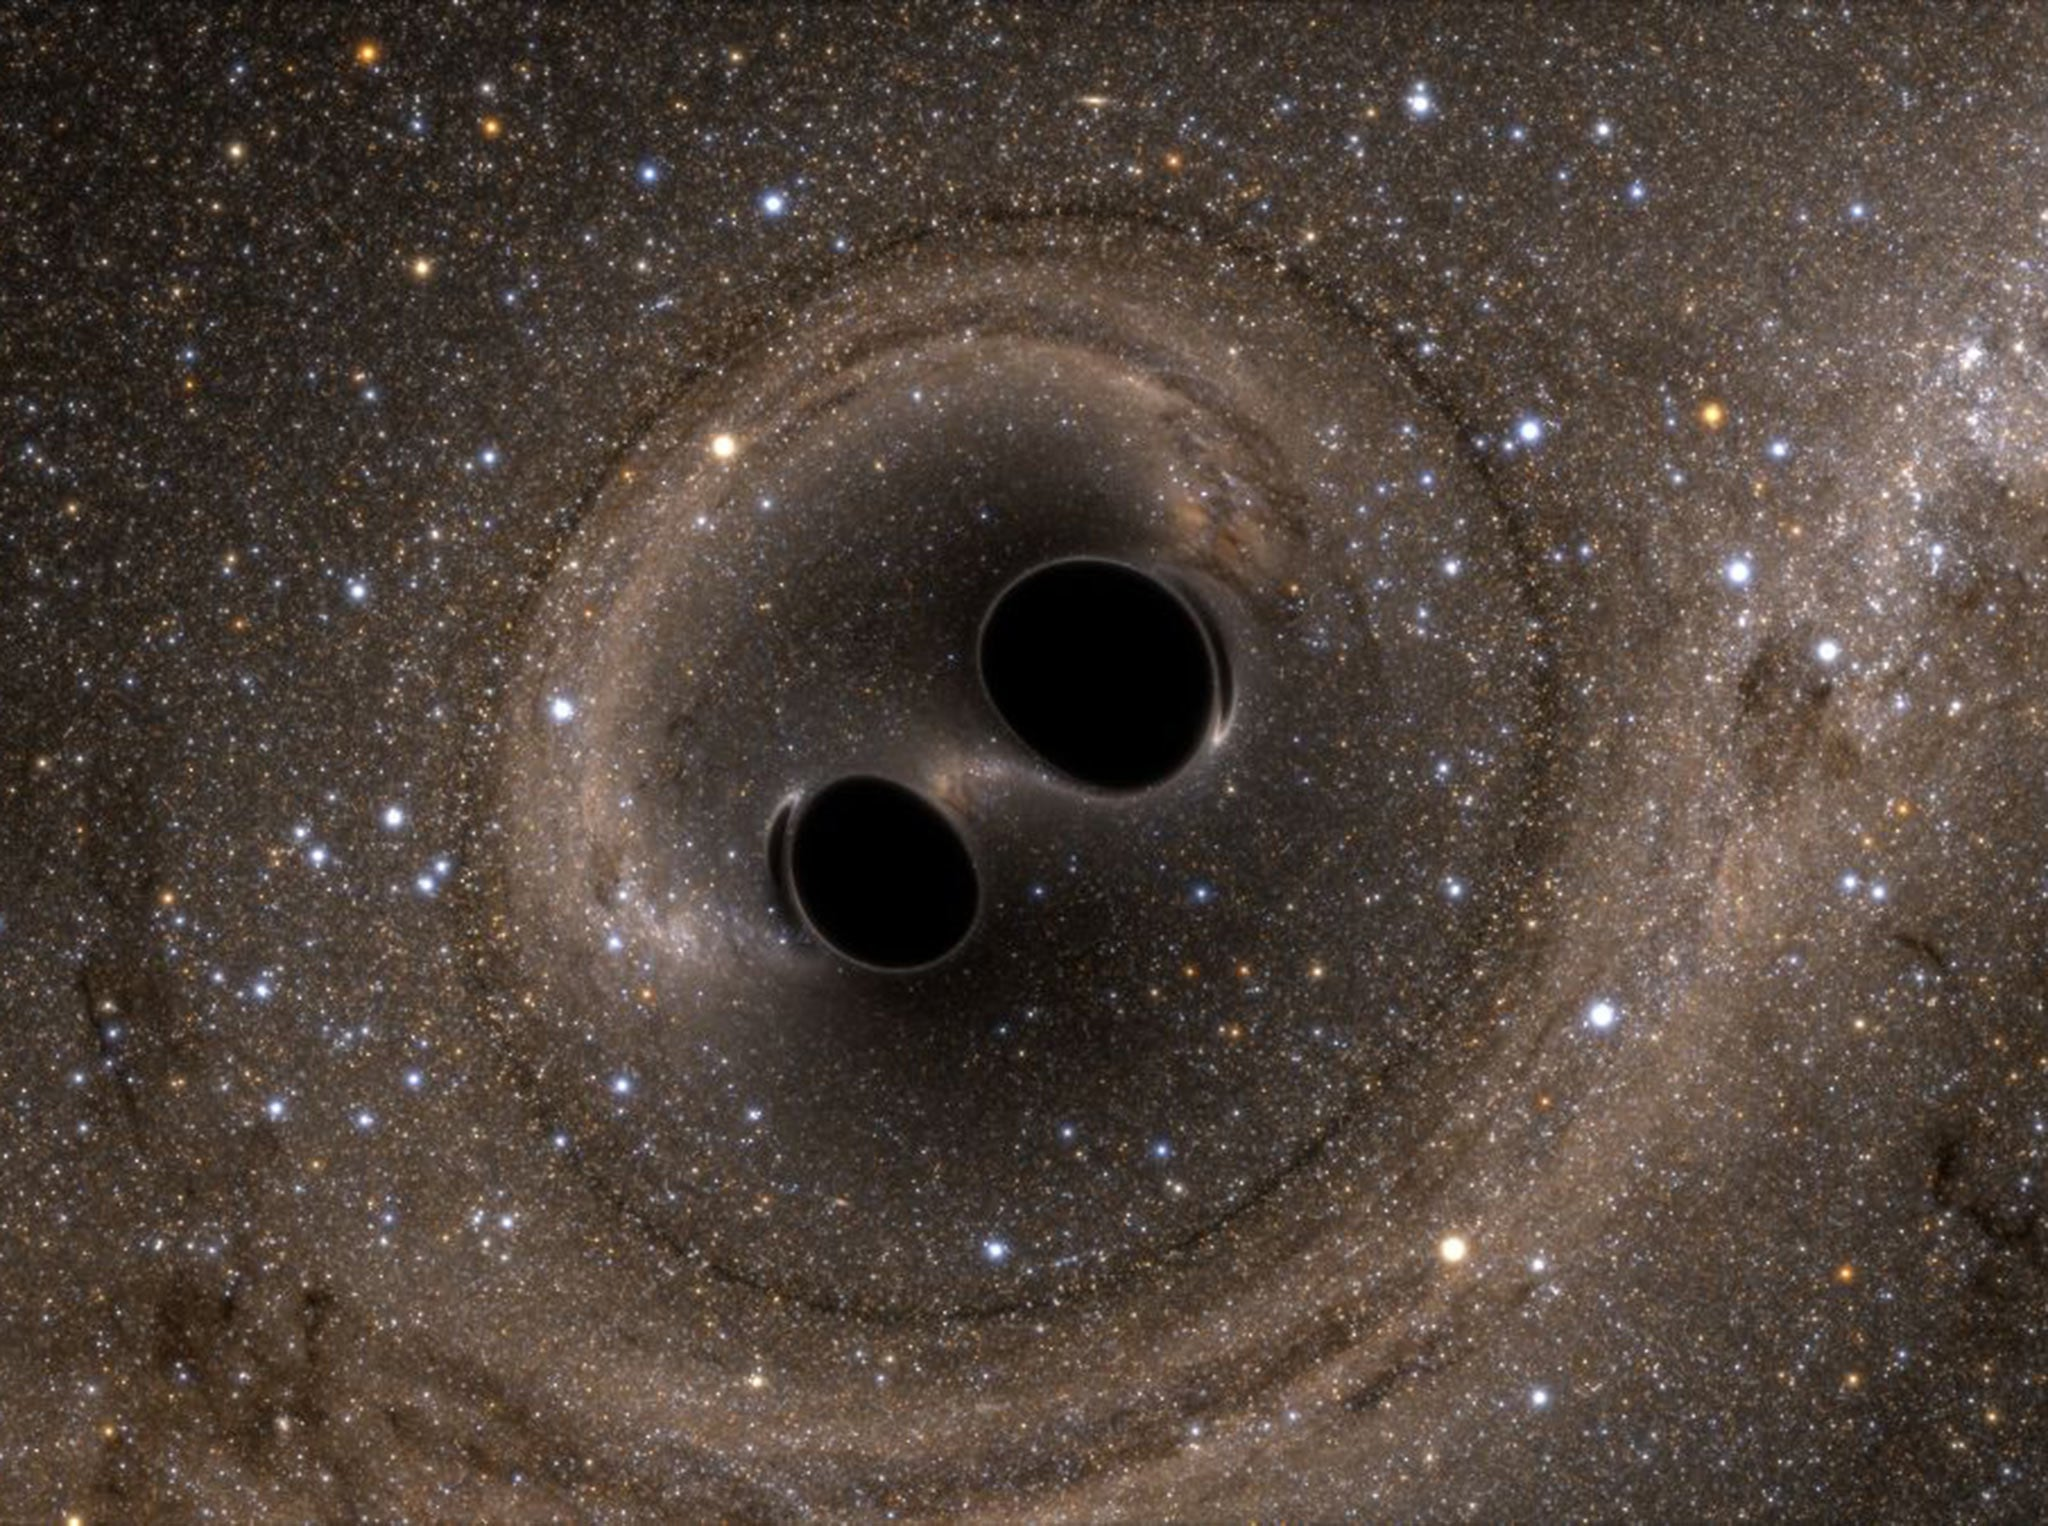 Gravitational waves announcement: Scientists hail 'spectacular' new detection of ripples in spacetime